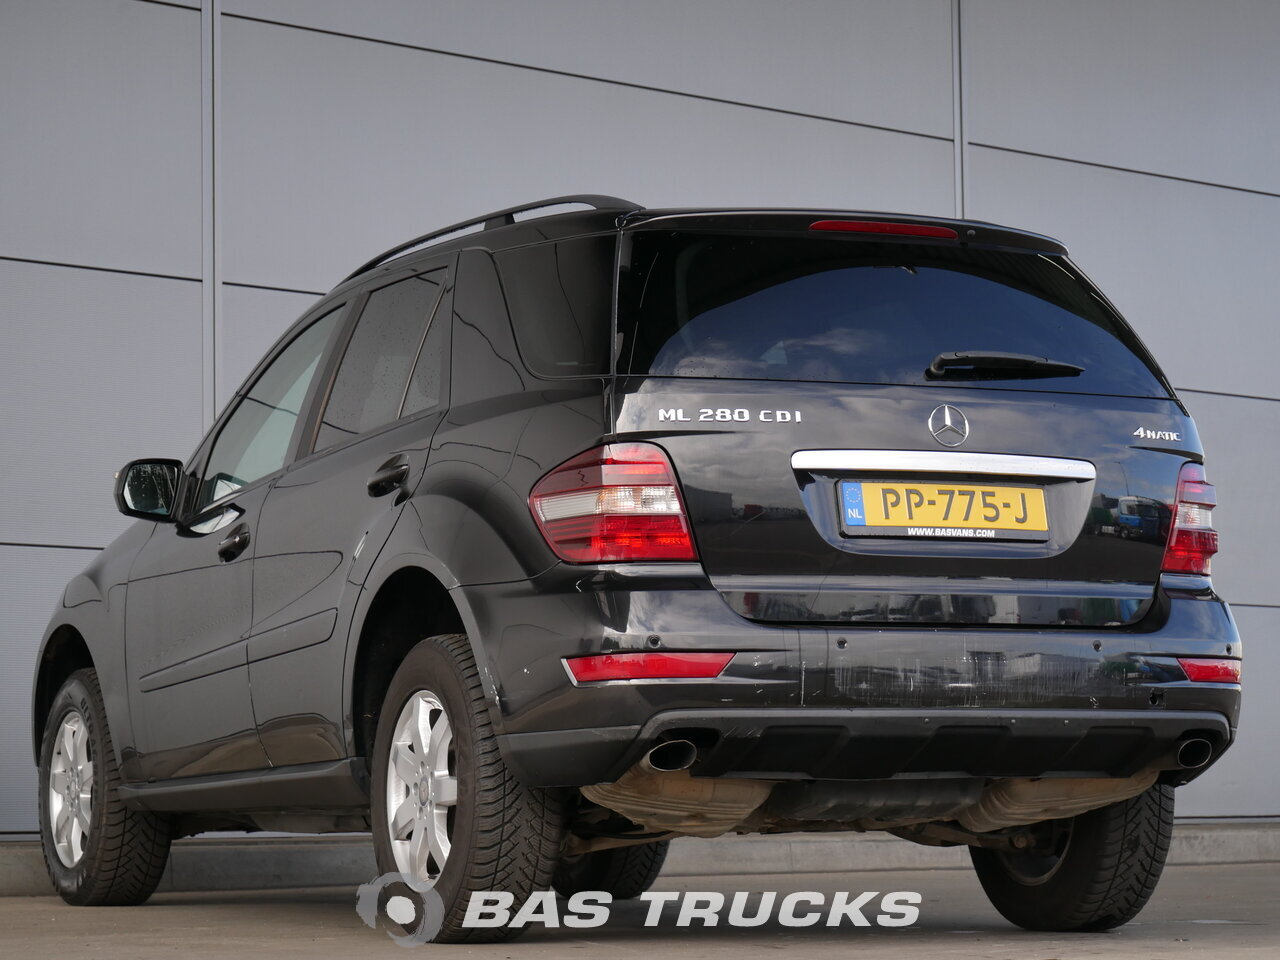 mercedes ml 280 cdi 4matic pkw euro 0 13600 bas trucks. Black Bedroom Furniture Sets. Home Design Ideas